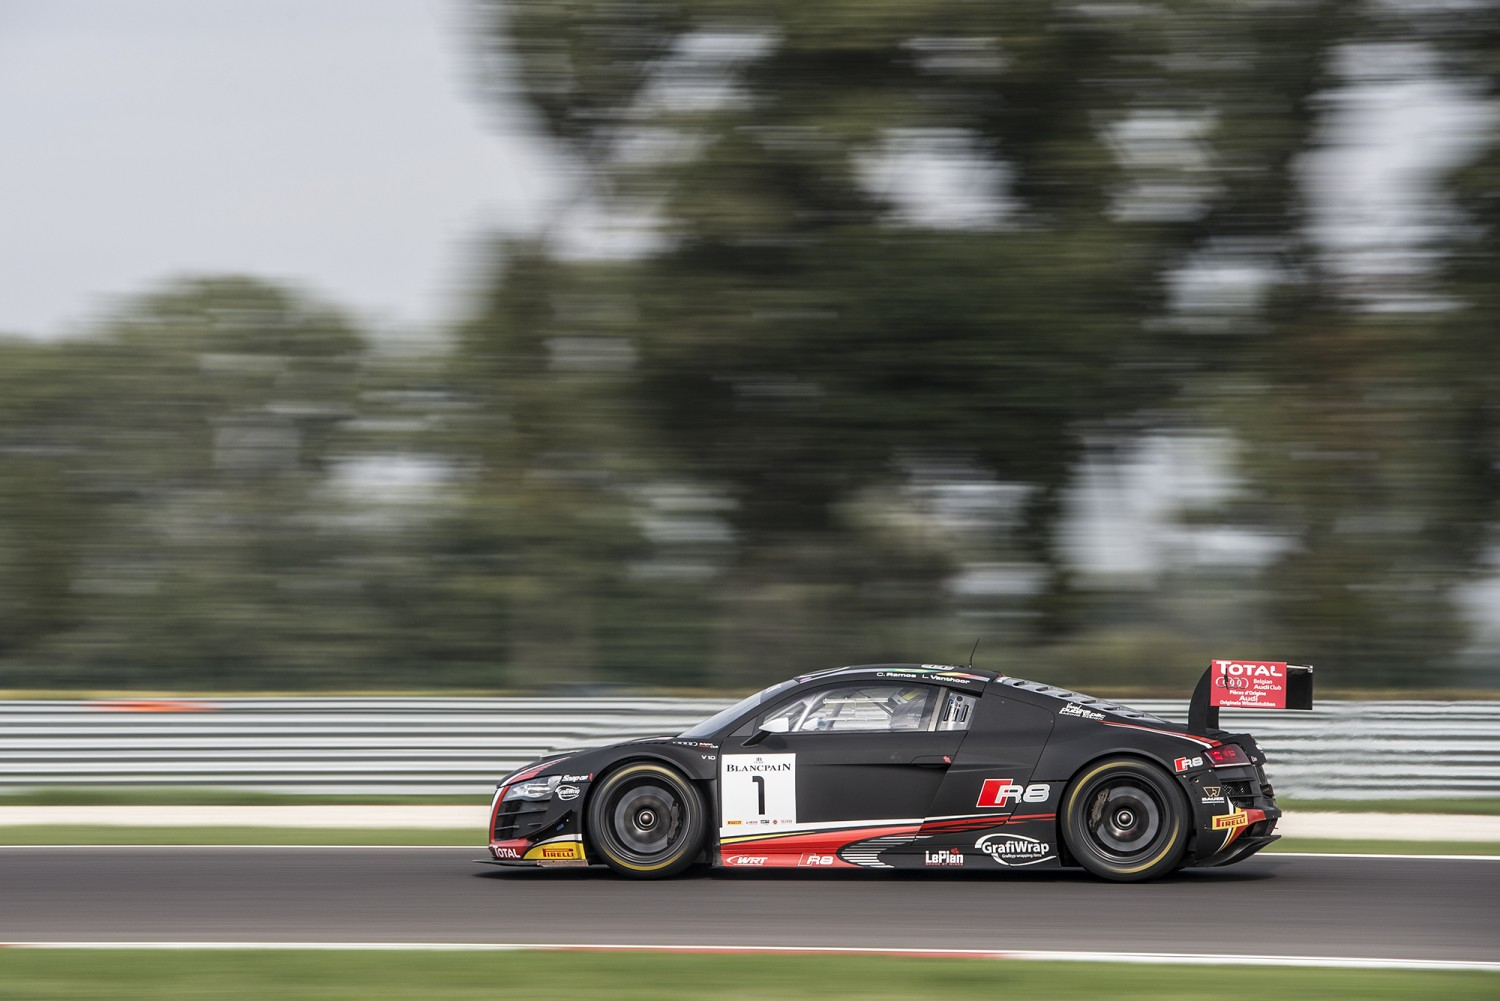 Laurens Vanthoor on pole for qualifying race